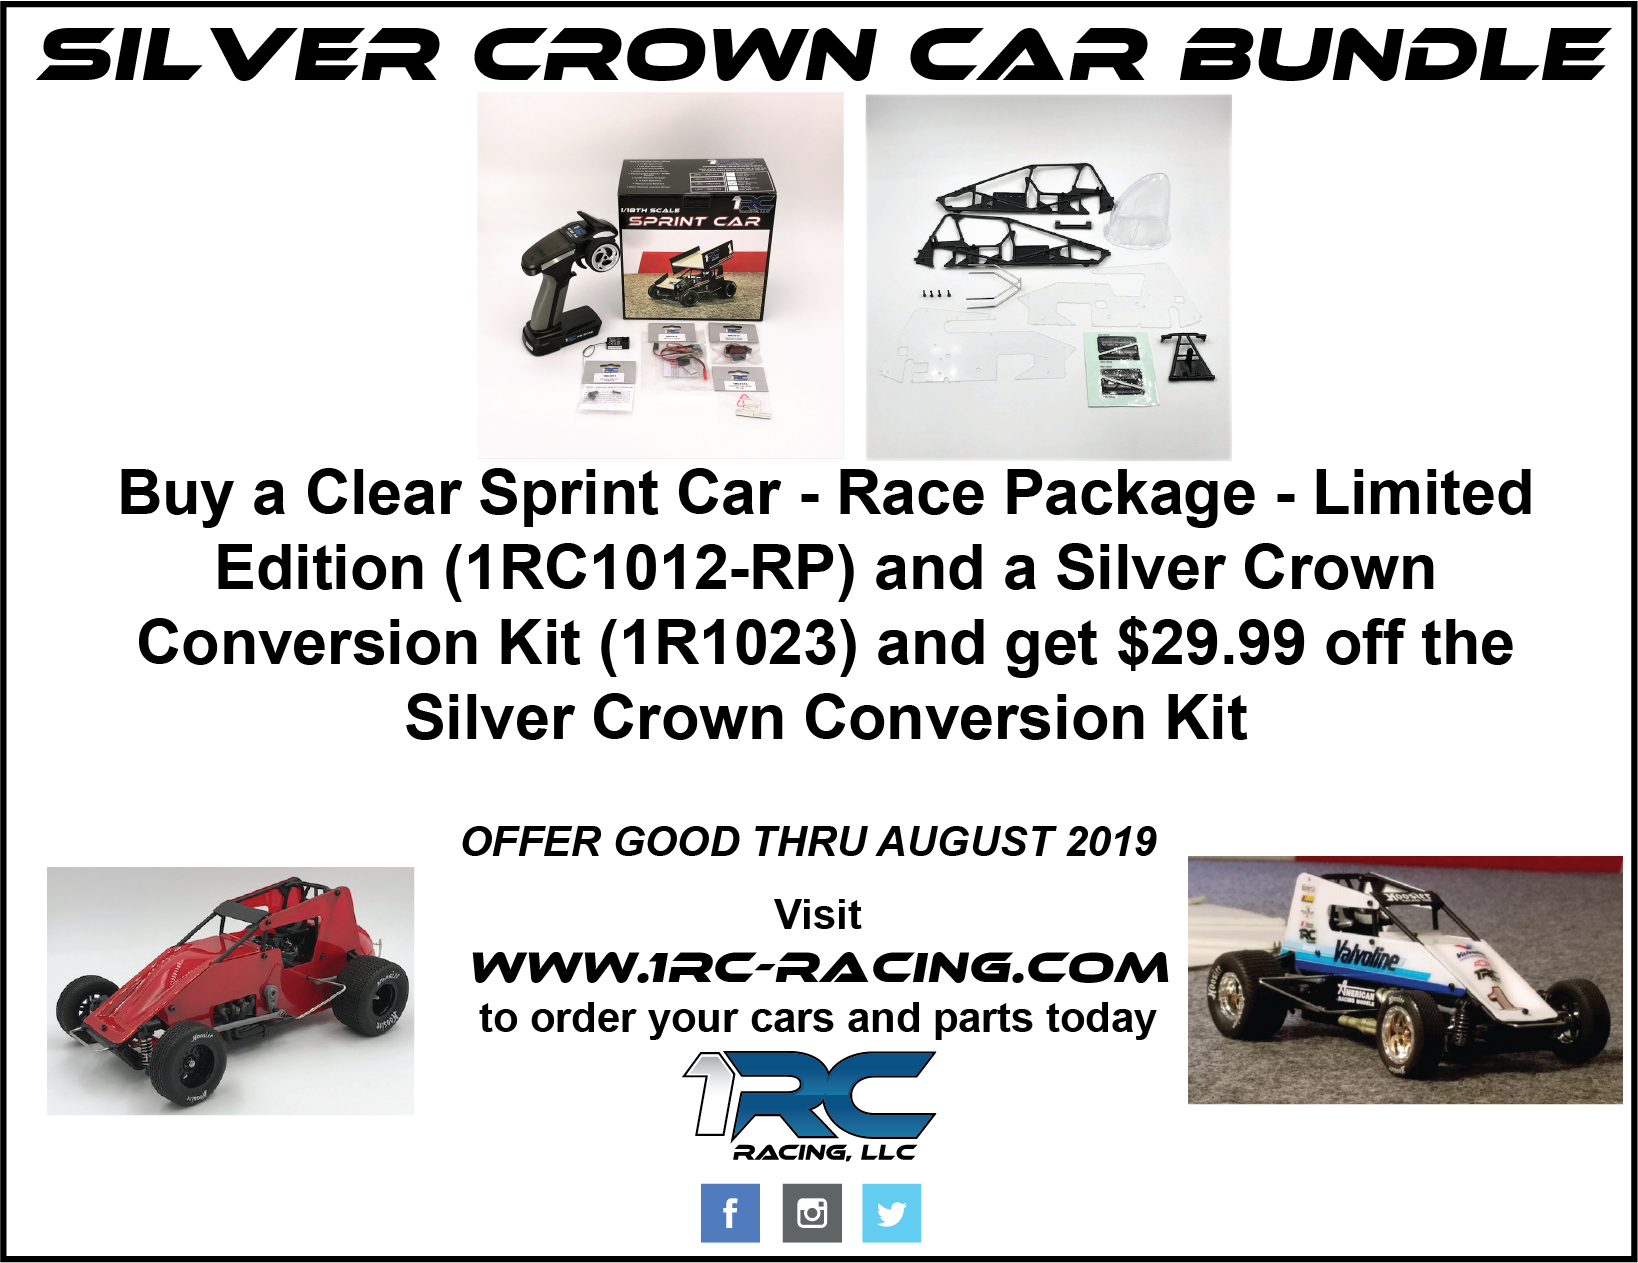 1-rc-racing-llc-silver-crown-car-bundle-aug-2019.png